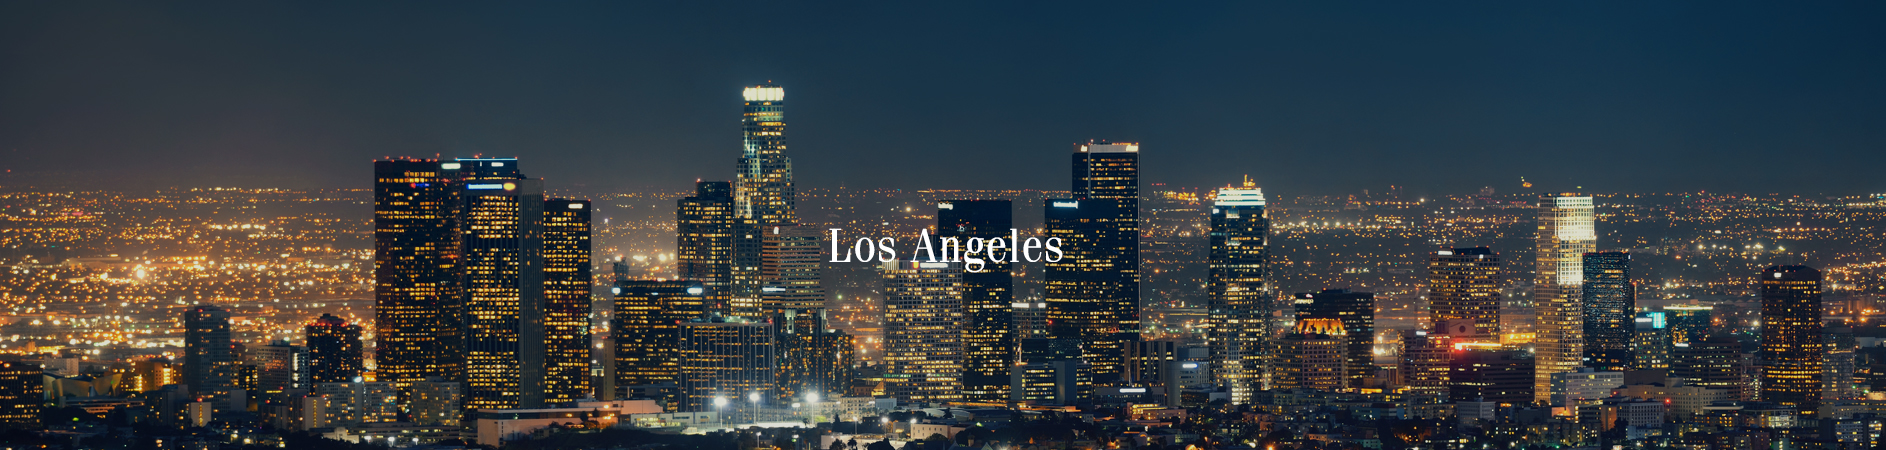 Los Angeles Investment Firm